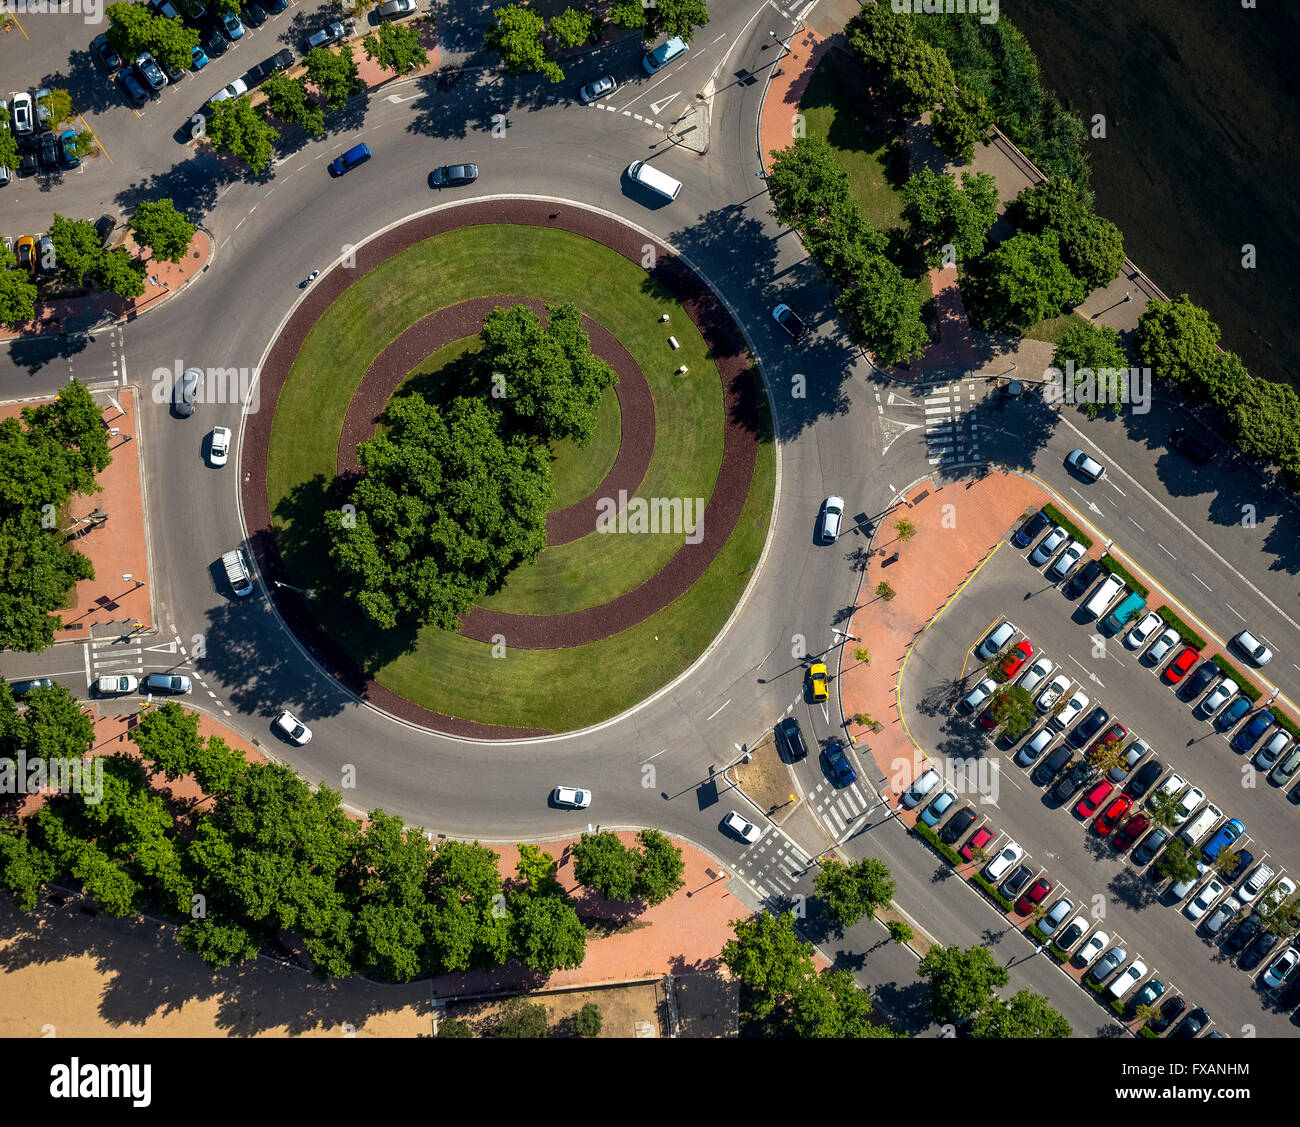 Aerial view, at the roundabout Av.Franca Sant Ponc, Girona, Costa Brava, Catalonia, Spain, Europe, Aerial view, - Stock Image